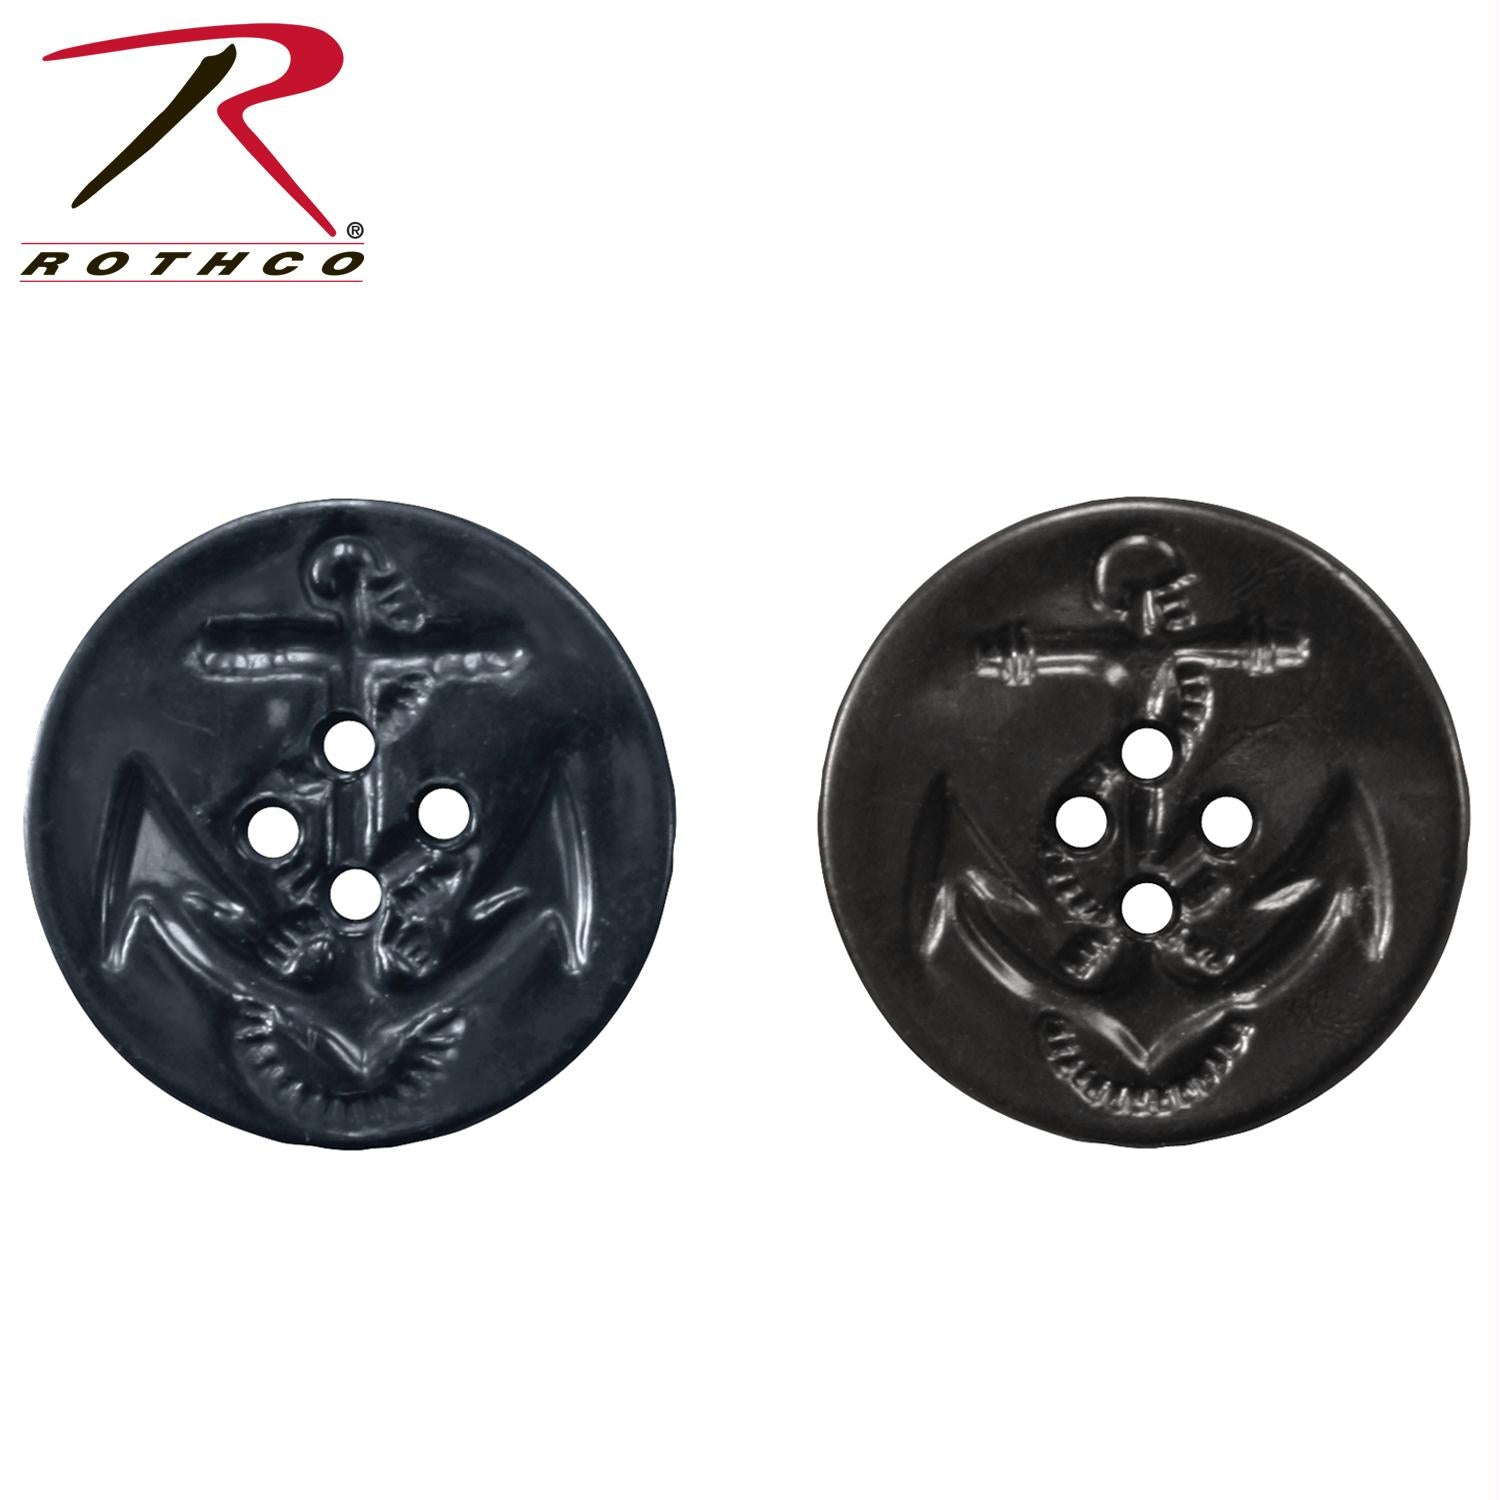 Rothco Peacoat Buttons - Black